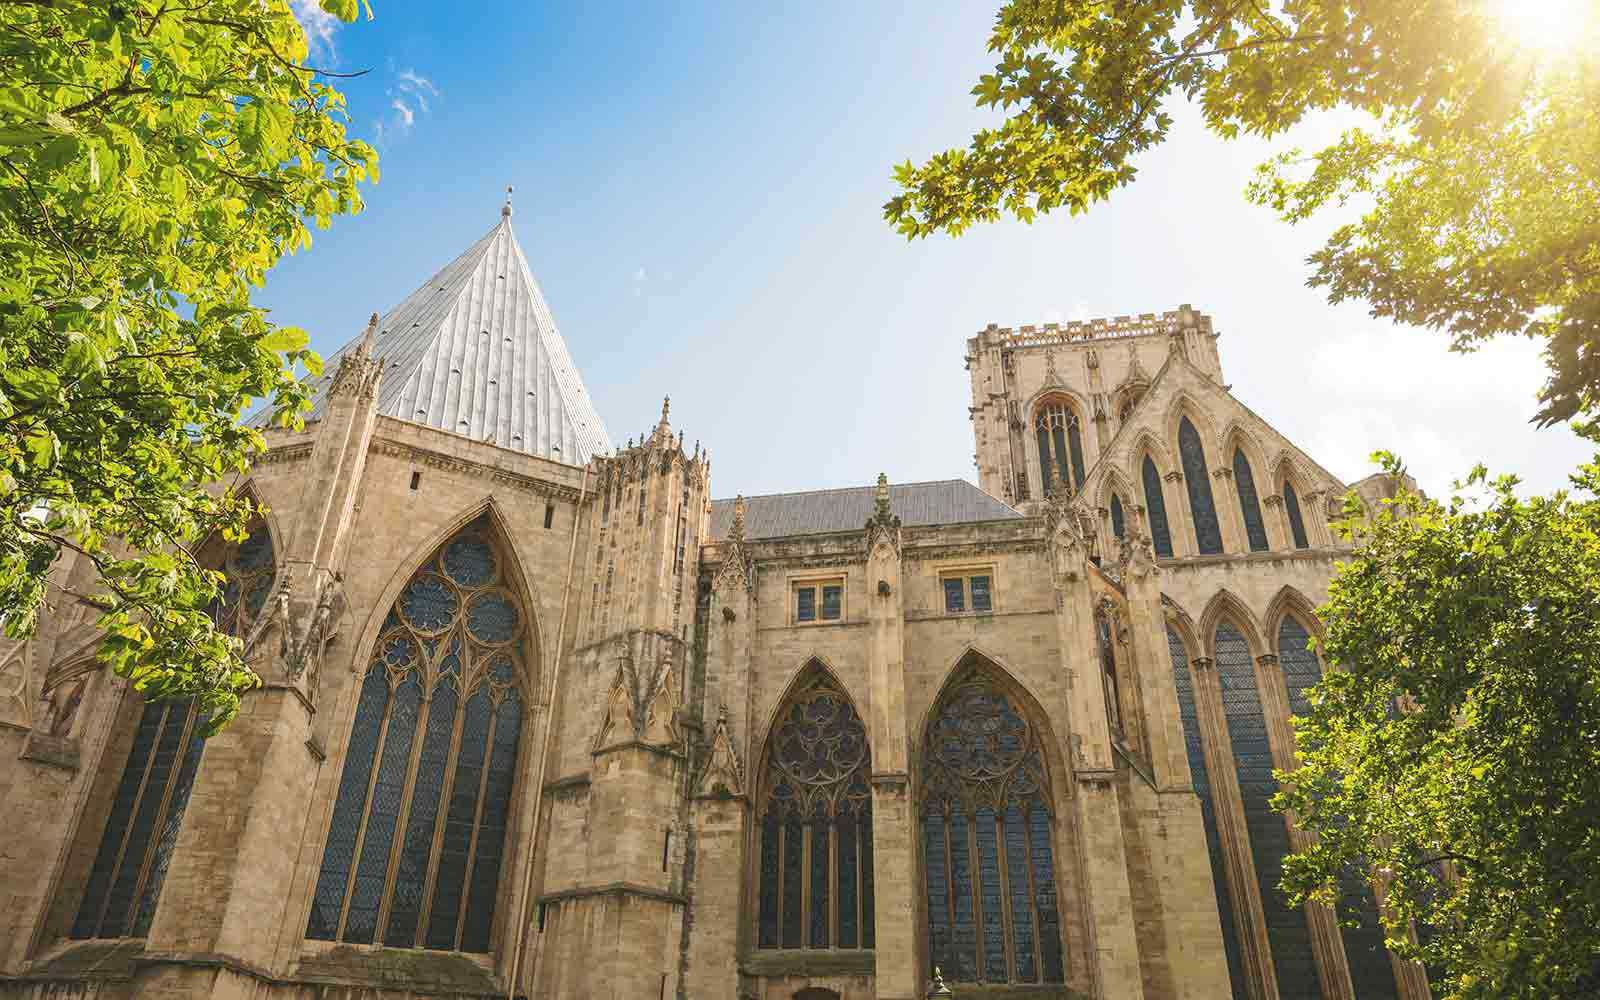 Looking up at York Minster and trees